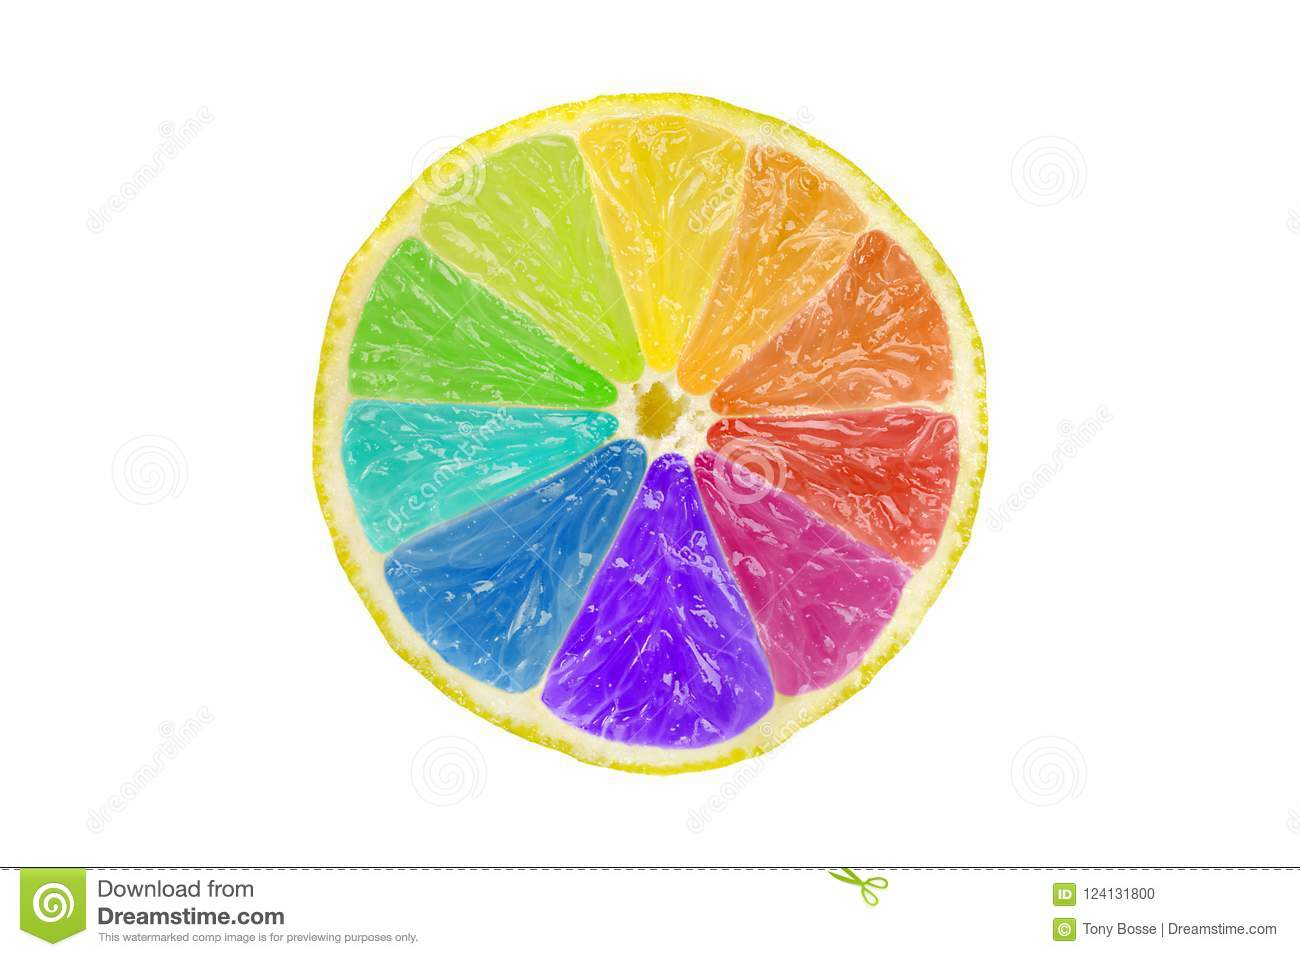 83 249 Color Wheel Photos Free Royalty Free Stock Photos From Dreamstime